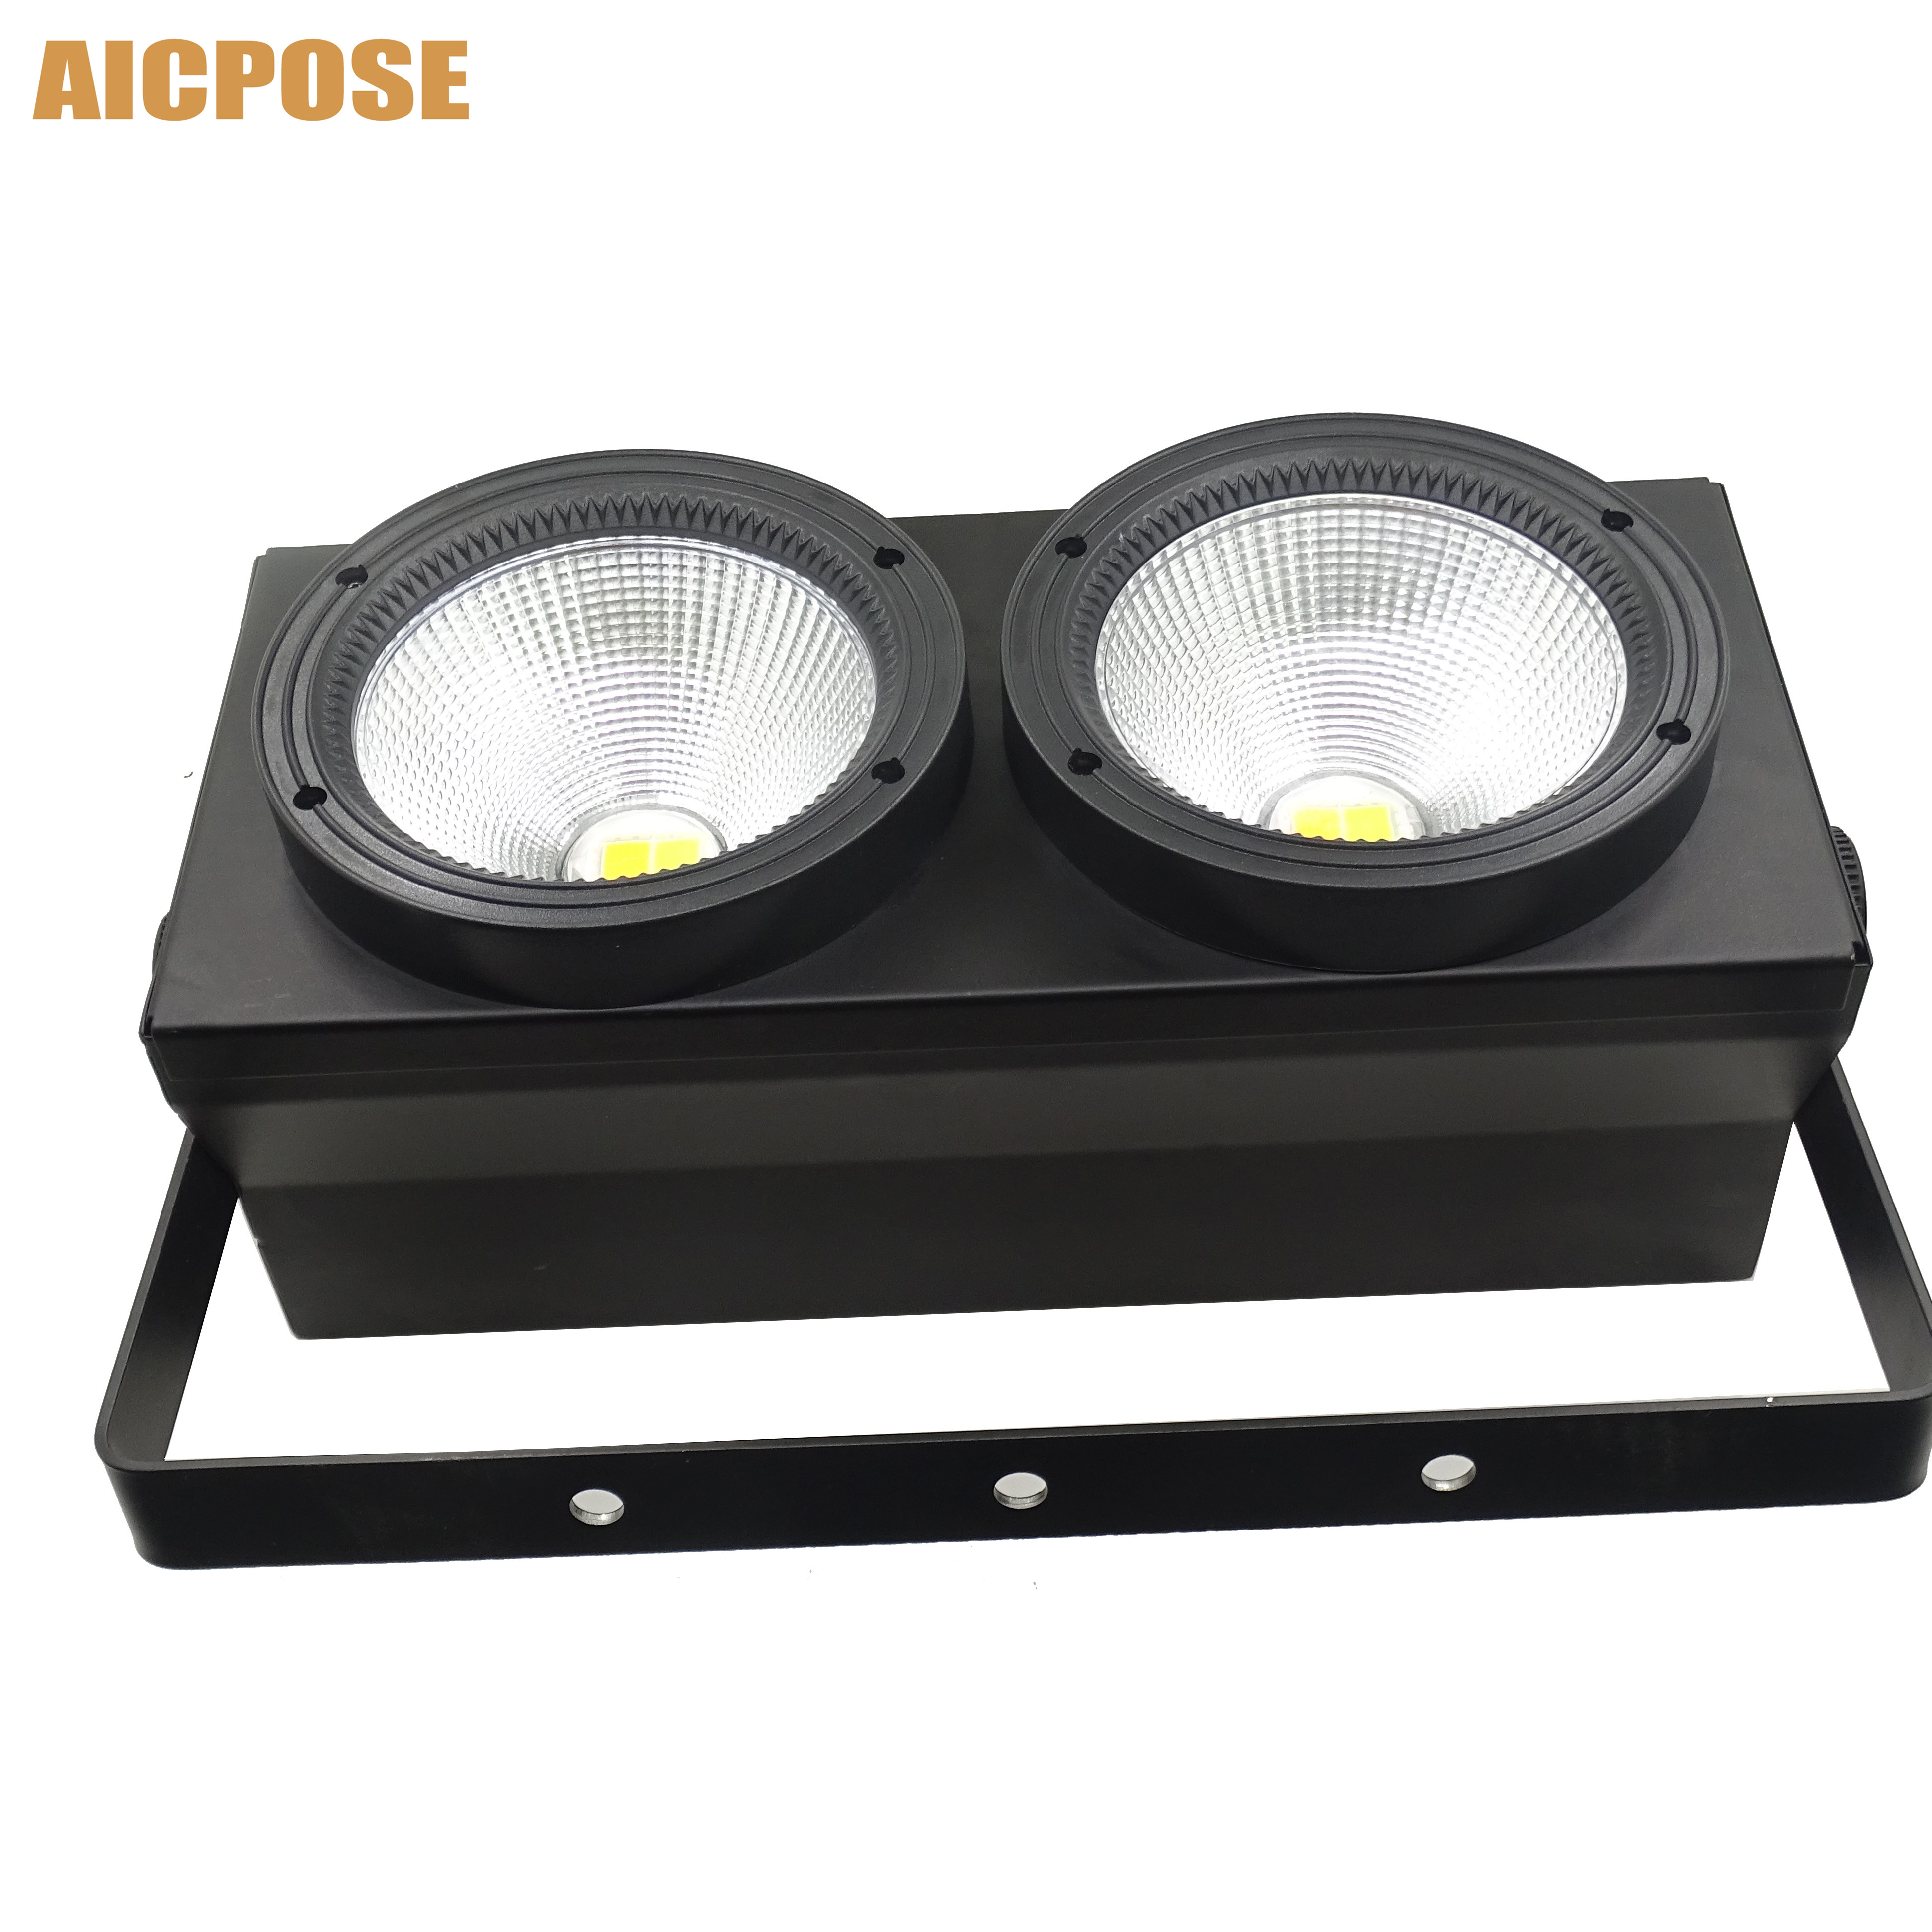 2 Eyes LED COB Blinder Light Cold White/Warm White 2in1 COB LEDs Control Optional Individually 2x100W Audience Light